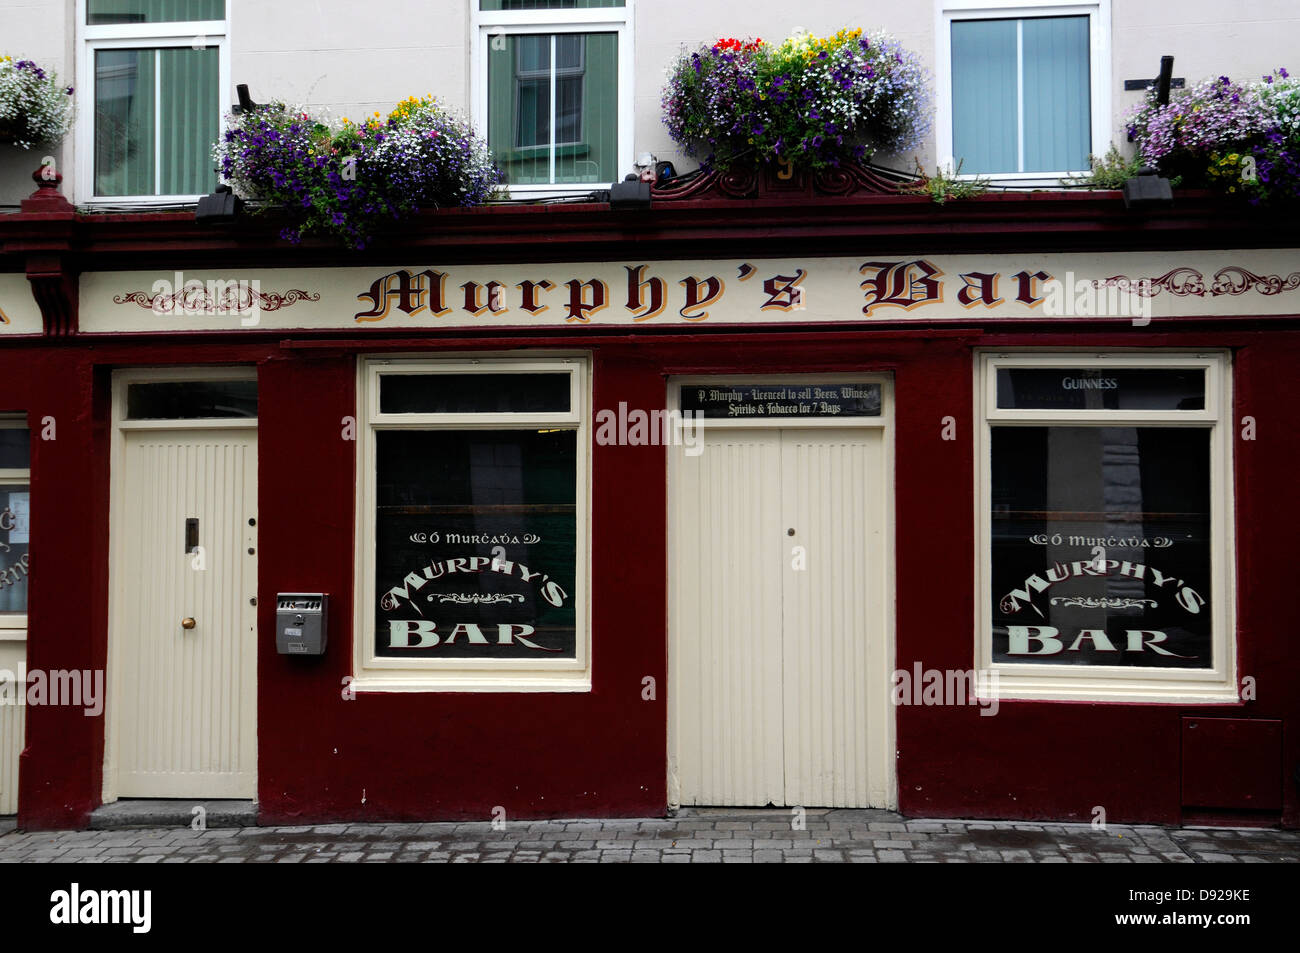 Murphys bar pub licensed premises galway ireland frontal front murphys bar pub licensed premises galway ireland frontal front street frontage view closed doors traditional public house rubansaba